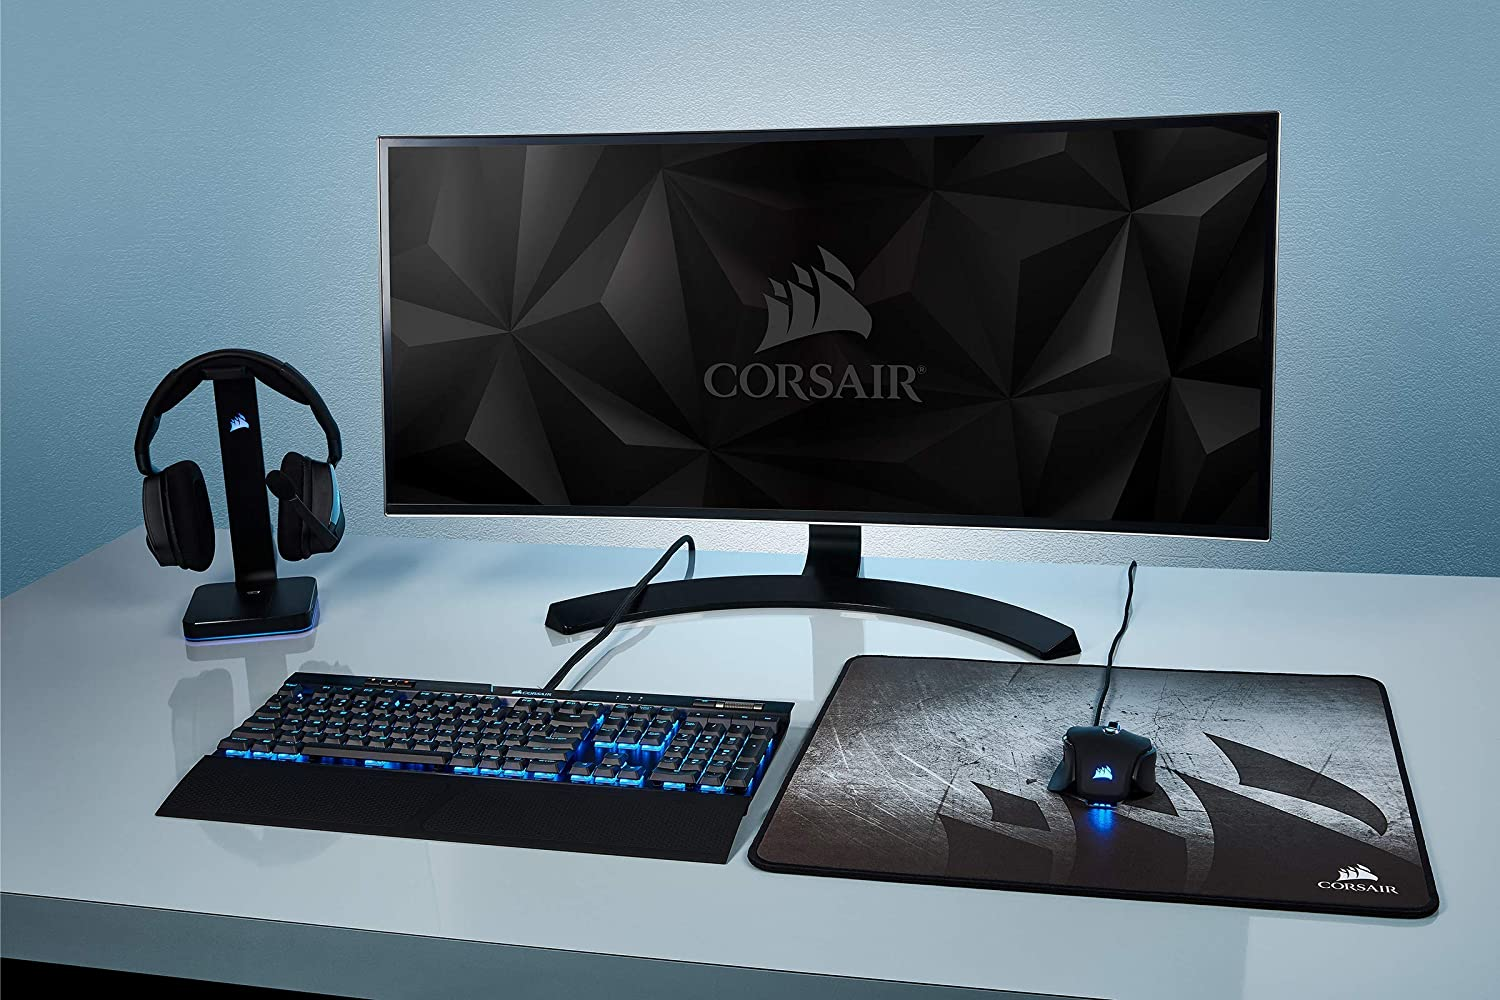 Extended Anti-Fray Cloth Gaming Mouse Pad High-Performance Mouse Pad Optimized for Gaming Sensors Corsair MM300 ,Multi color Designed for Maximum Control CH-9000108-WW